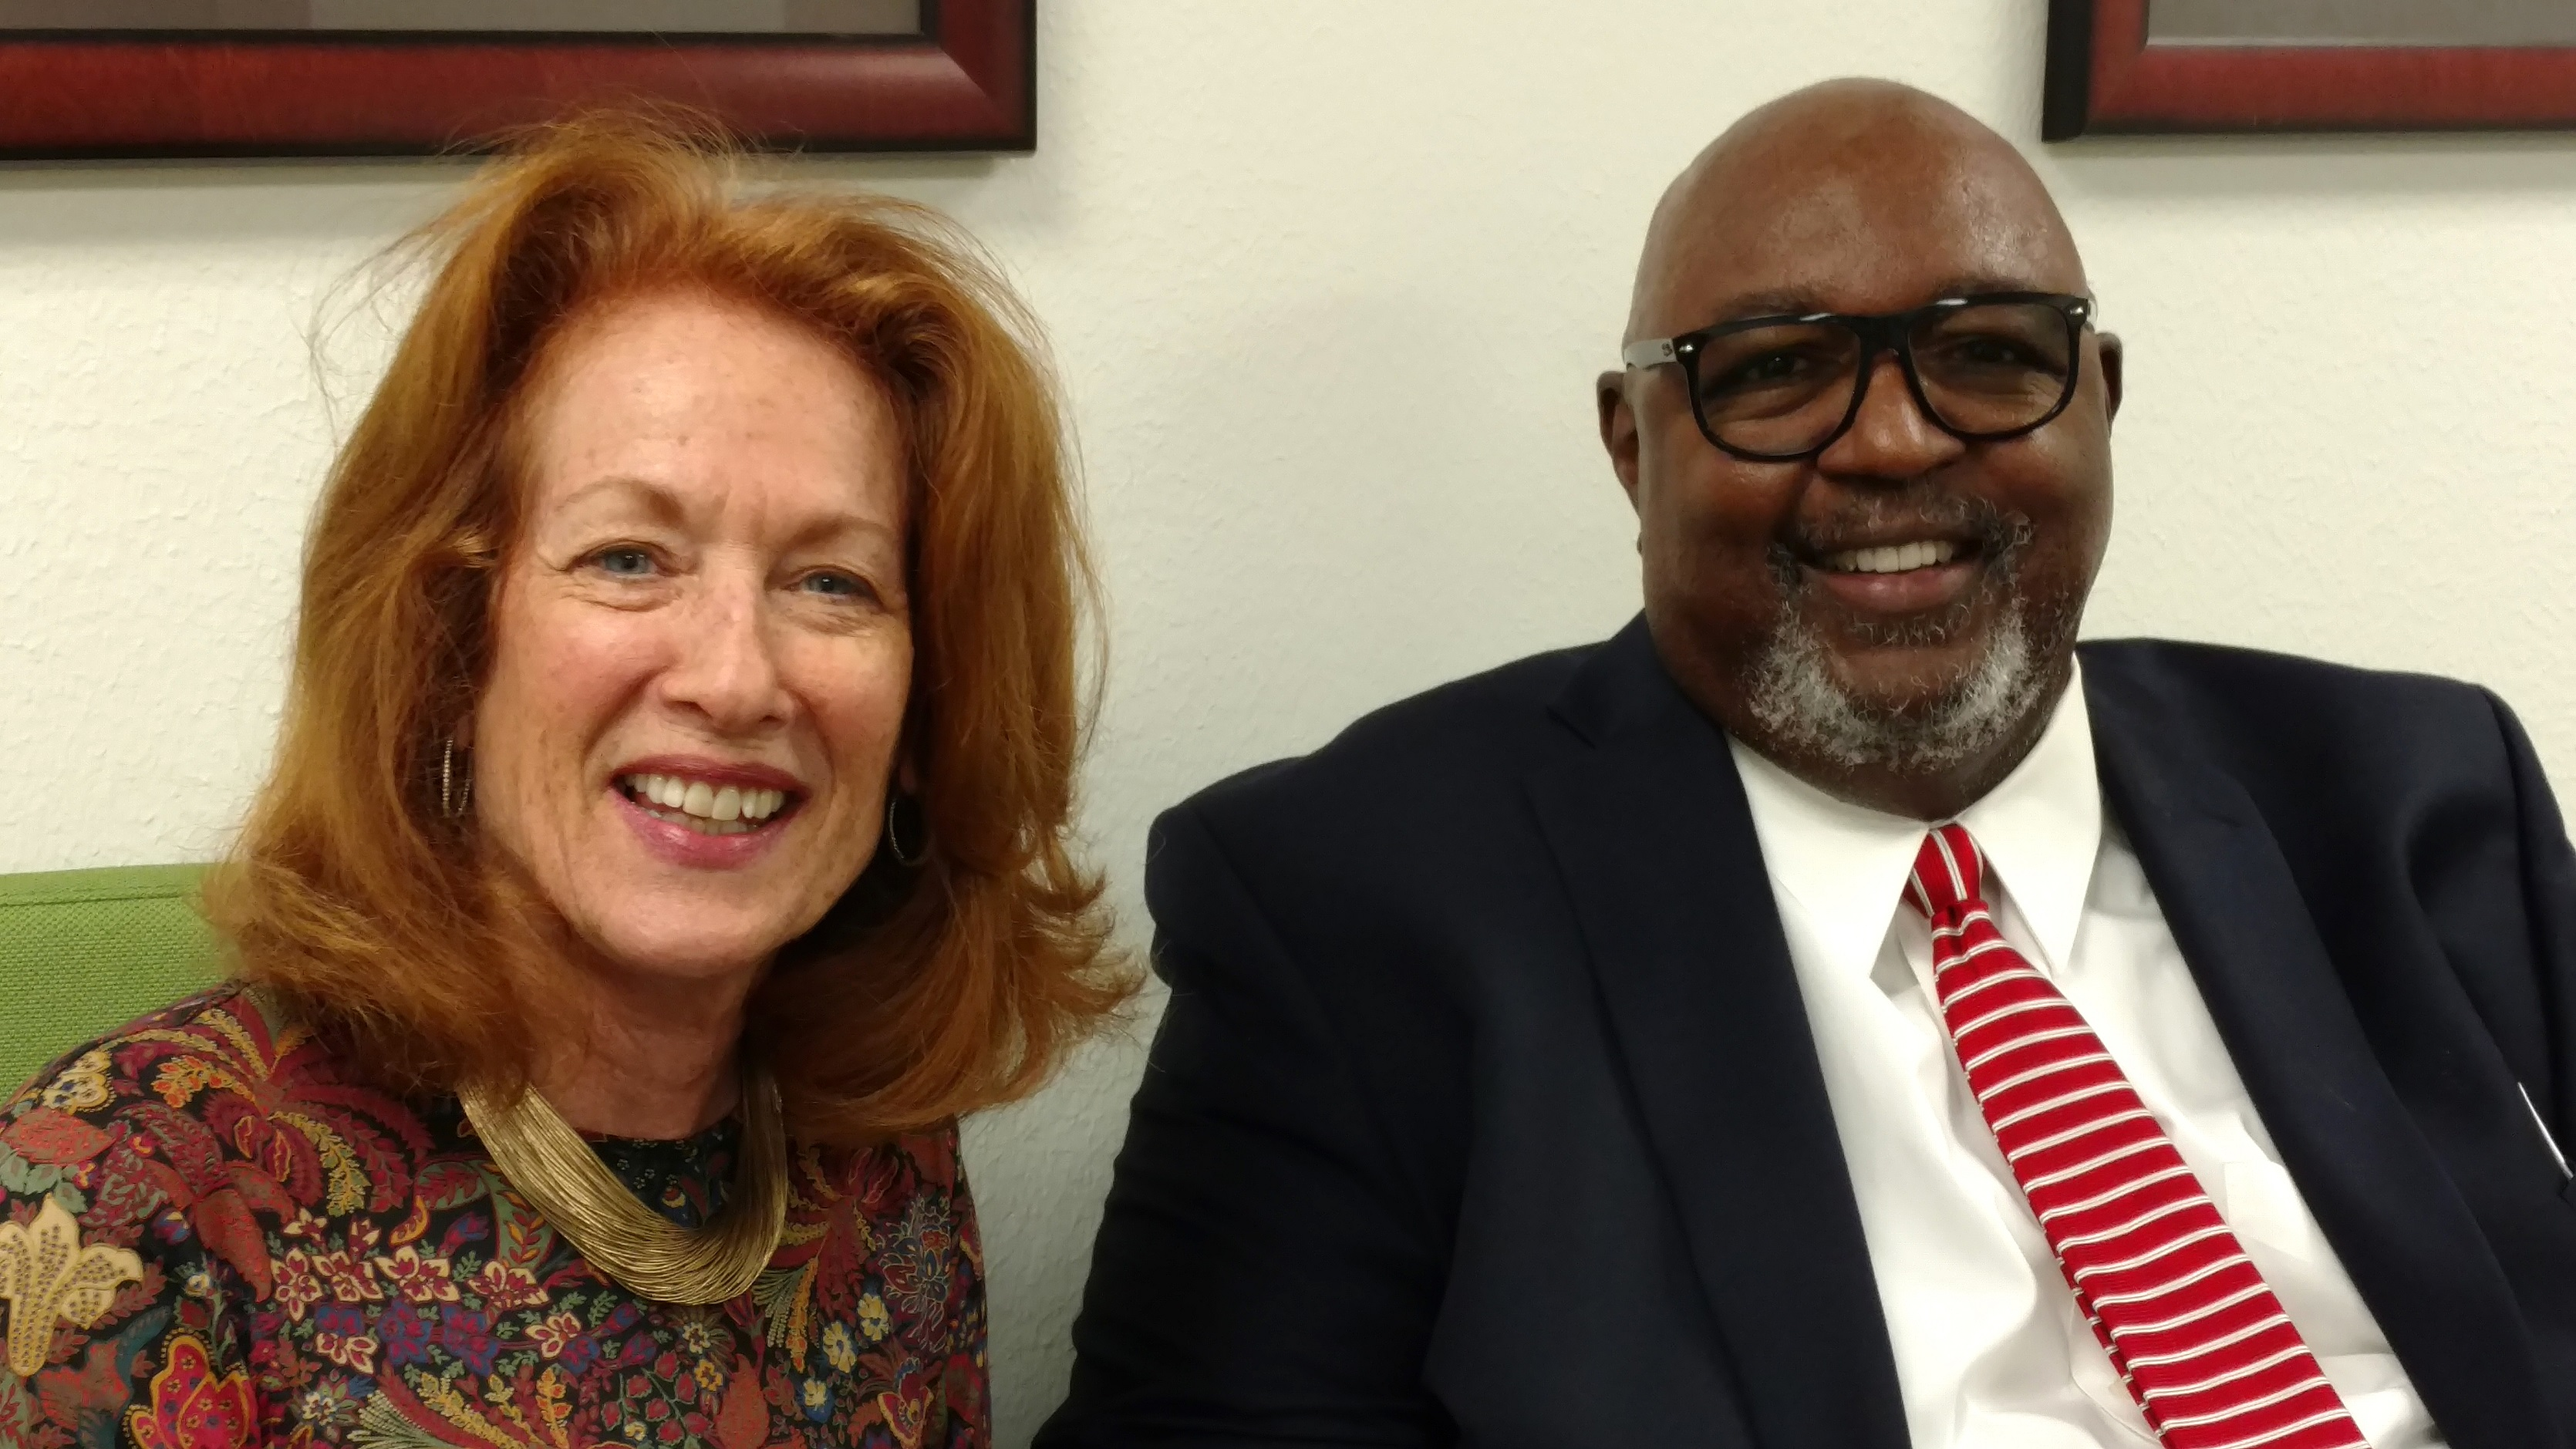 New HCPS board members: Sheila Aron & Darryl King